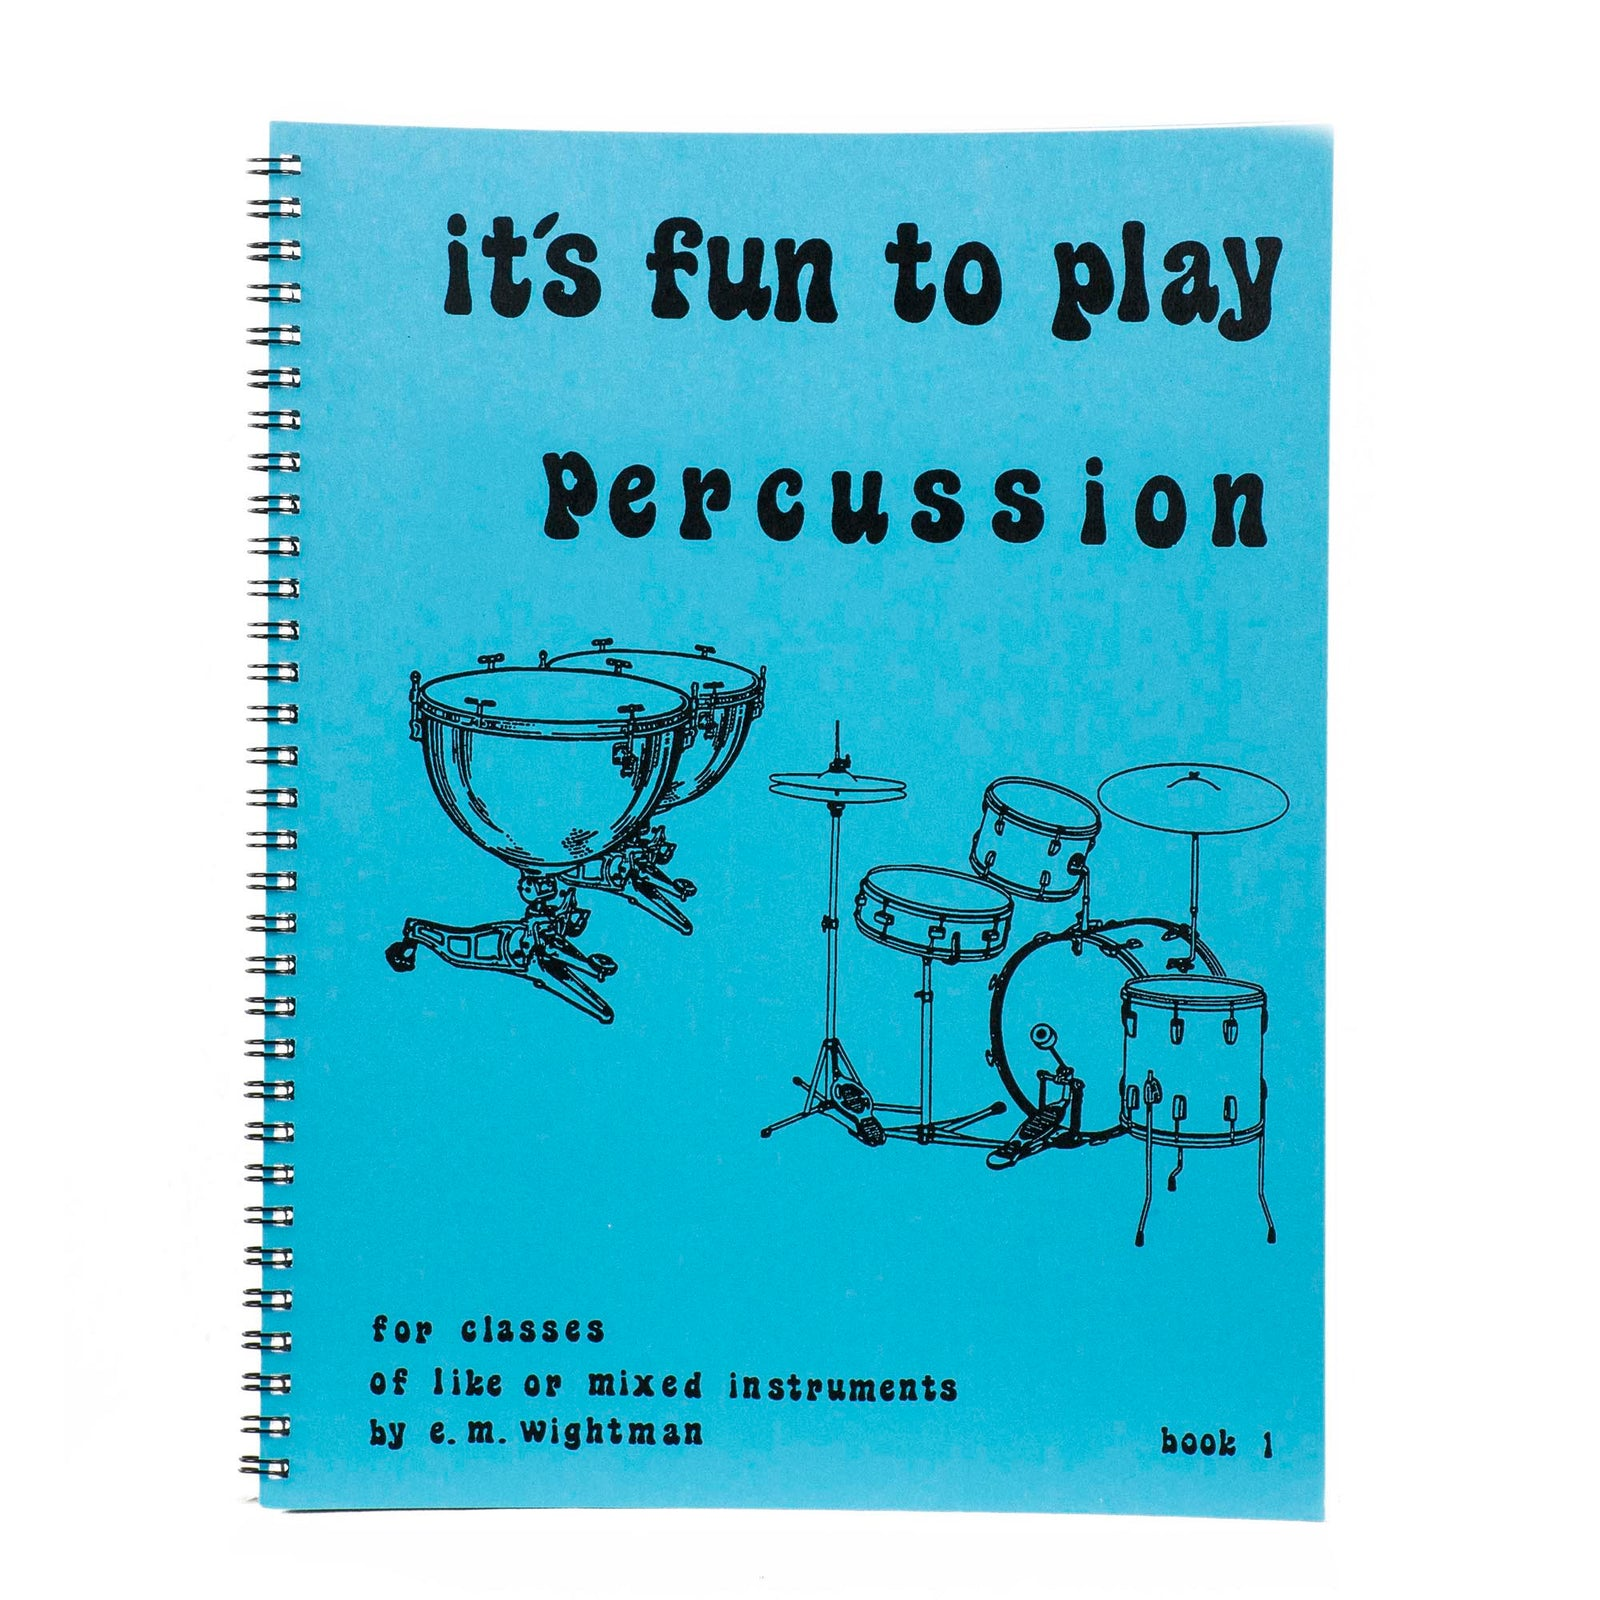 It's Fun To Play Percussion